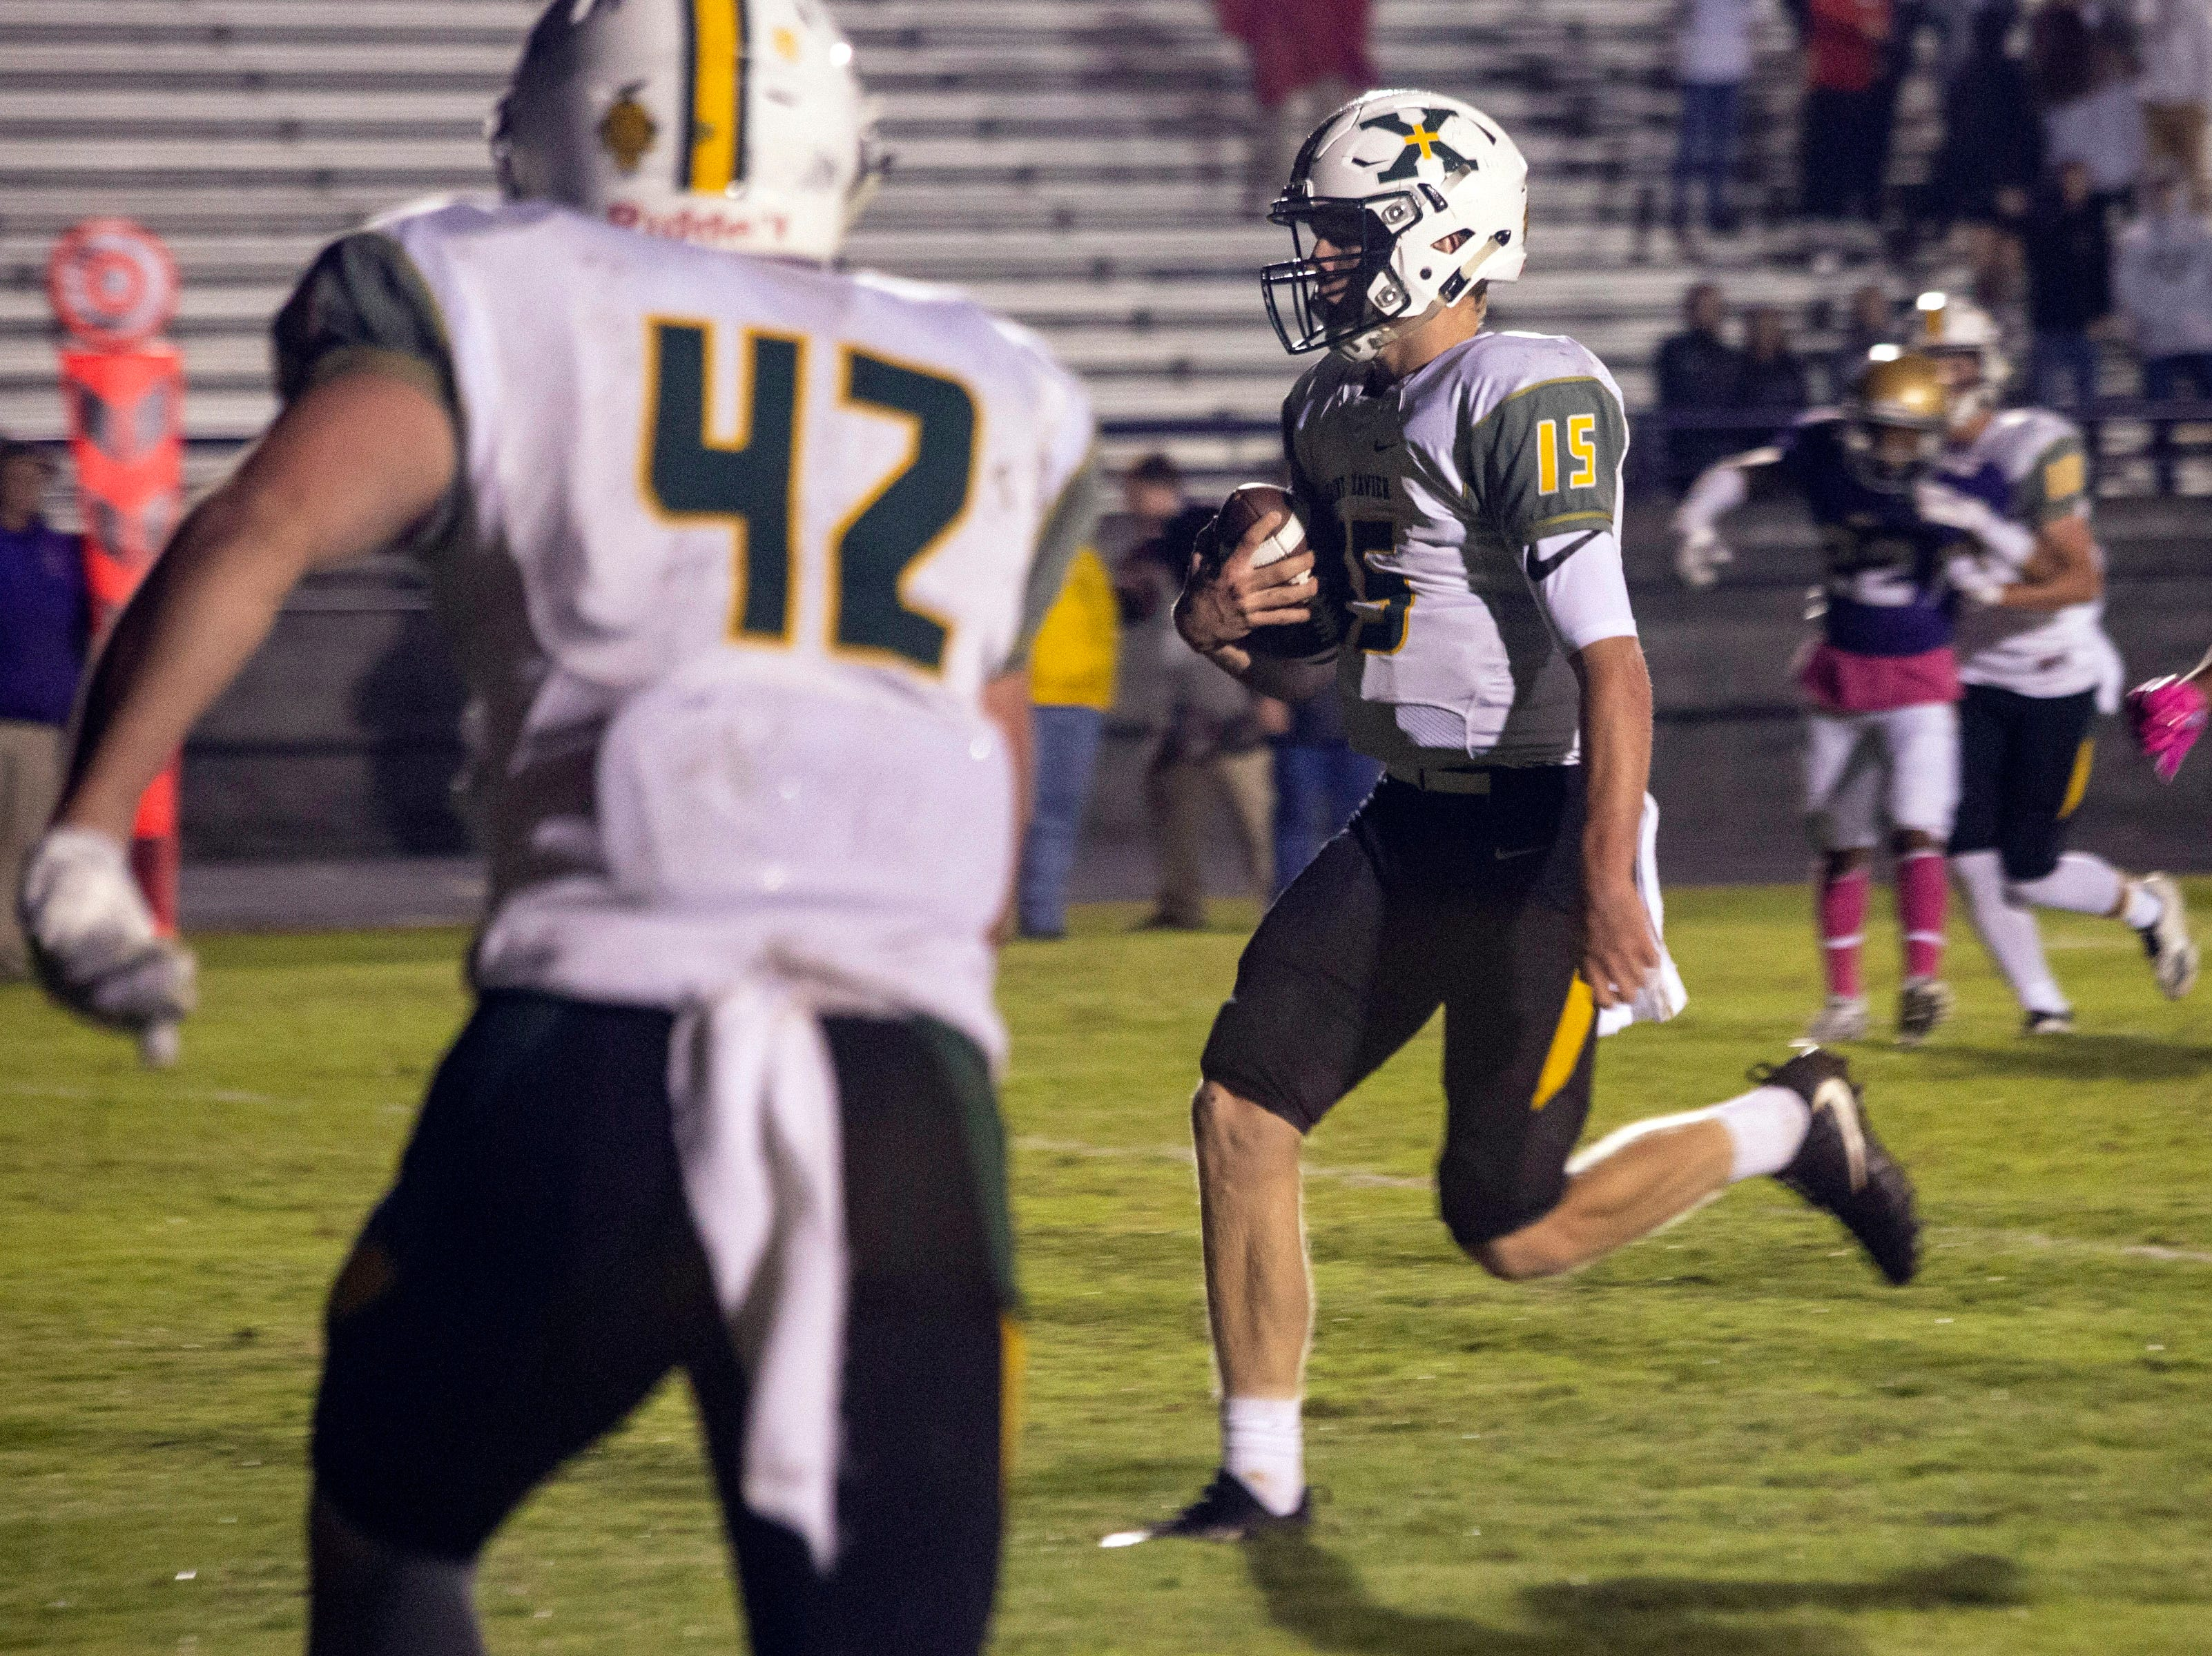 St. X quarterback Douglas Bodhaine runs in an easy touchdown against Male on Friday. Oct. 12, 2018